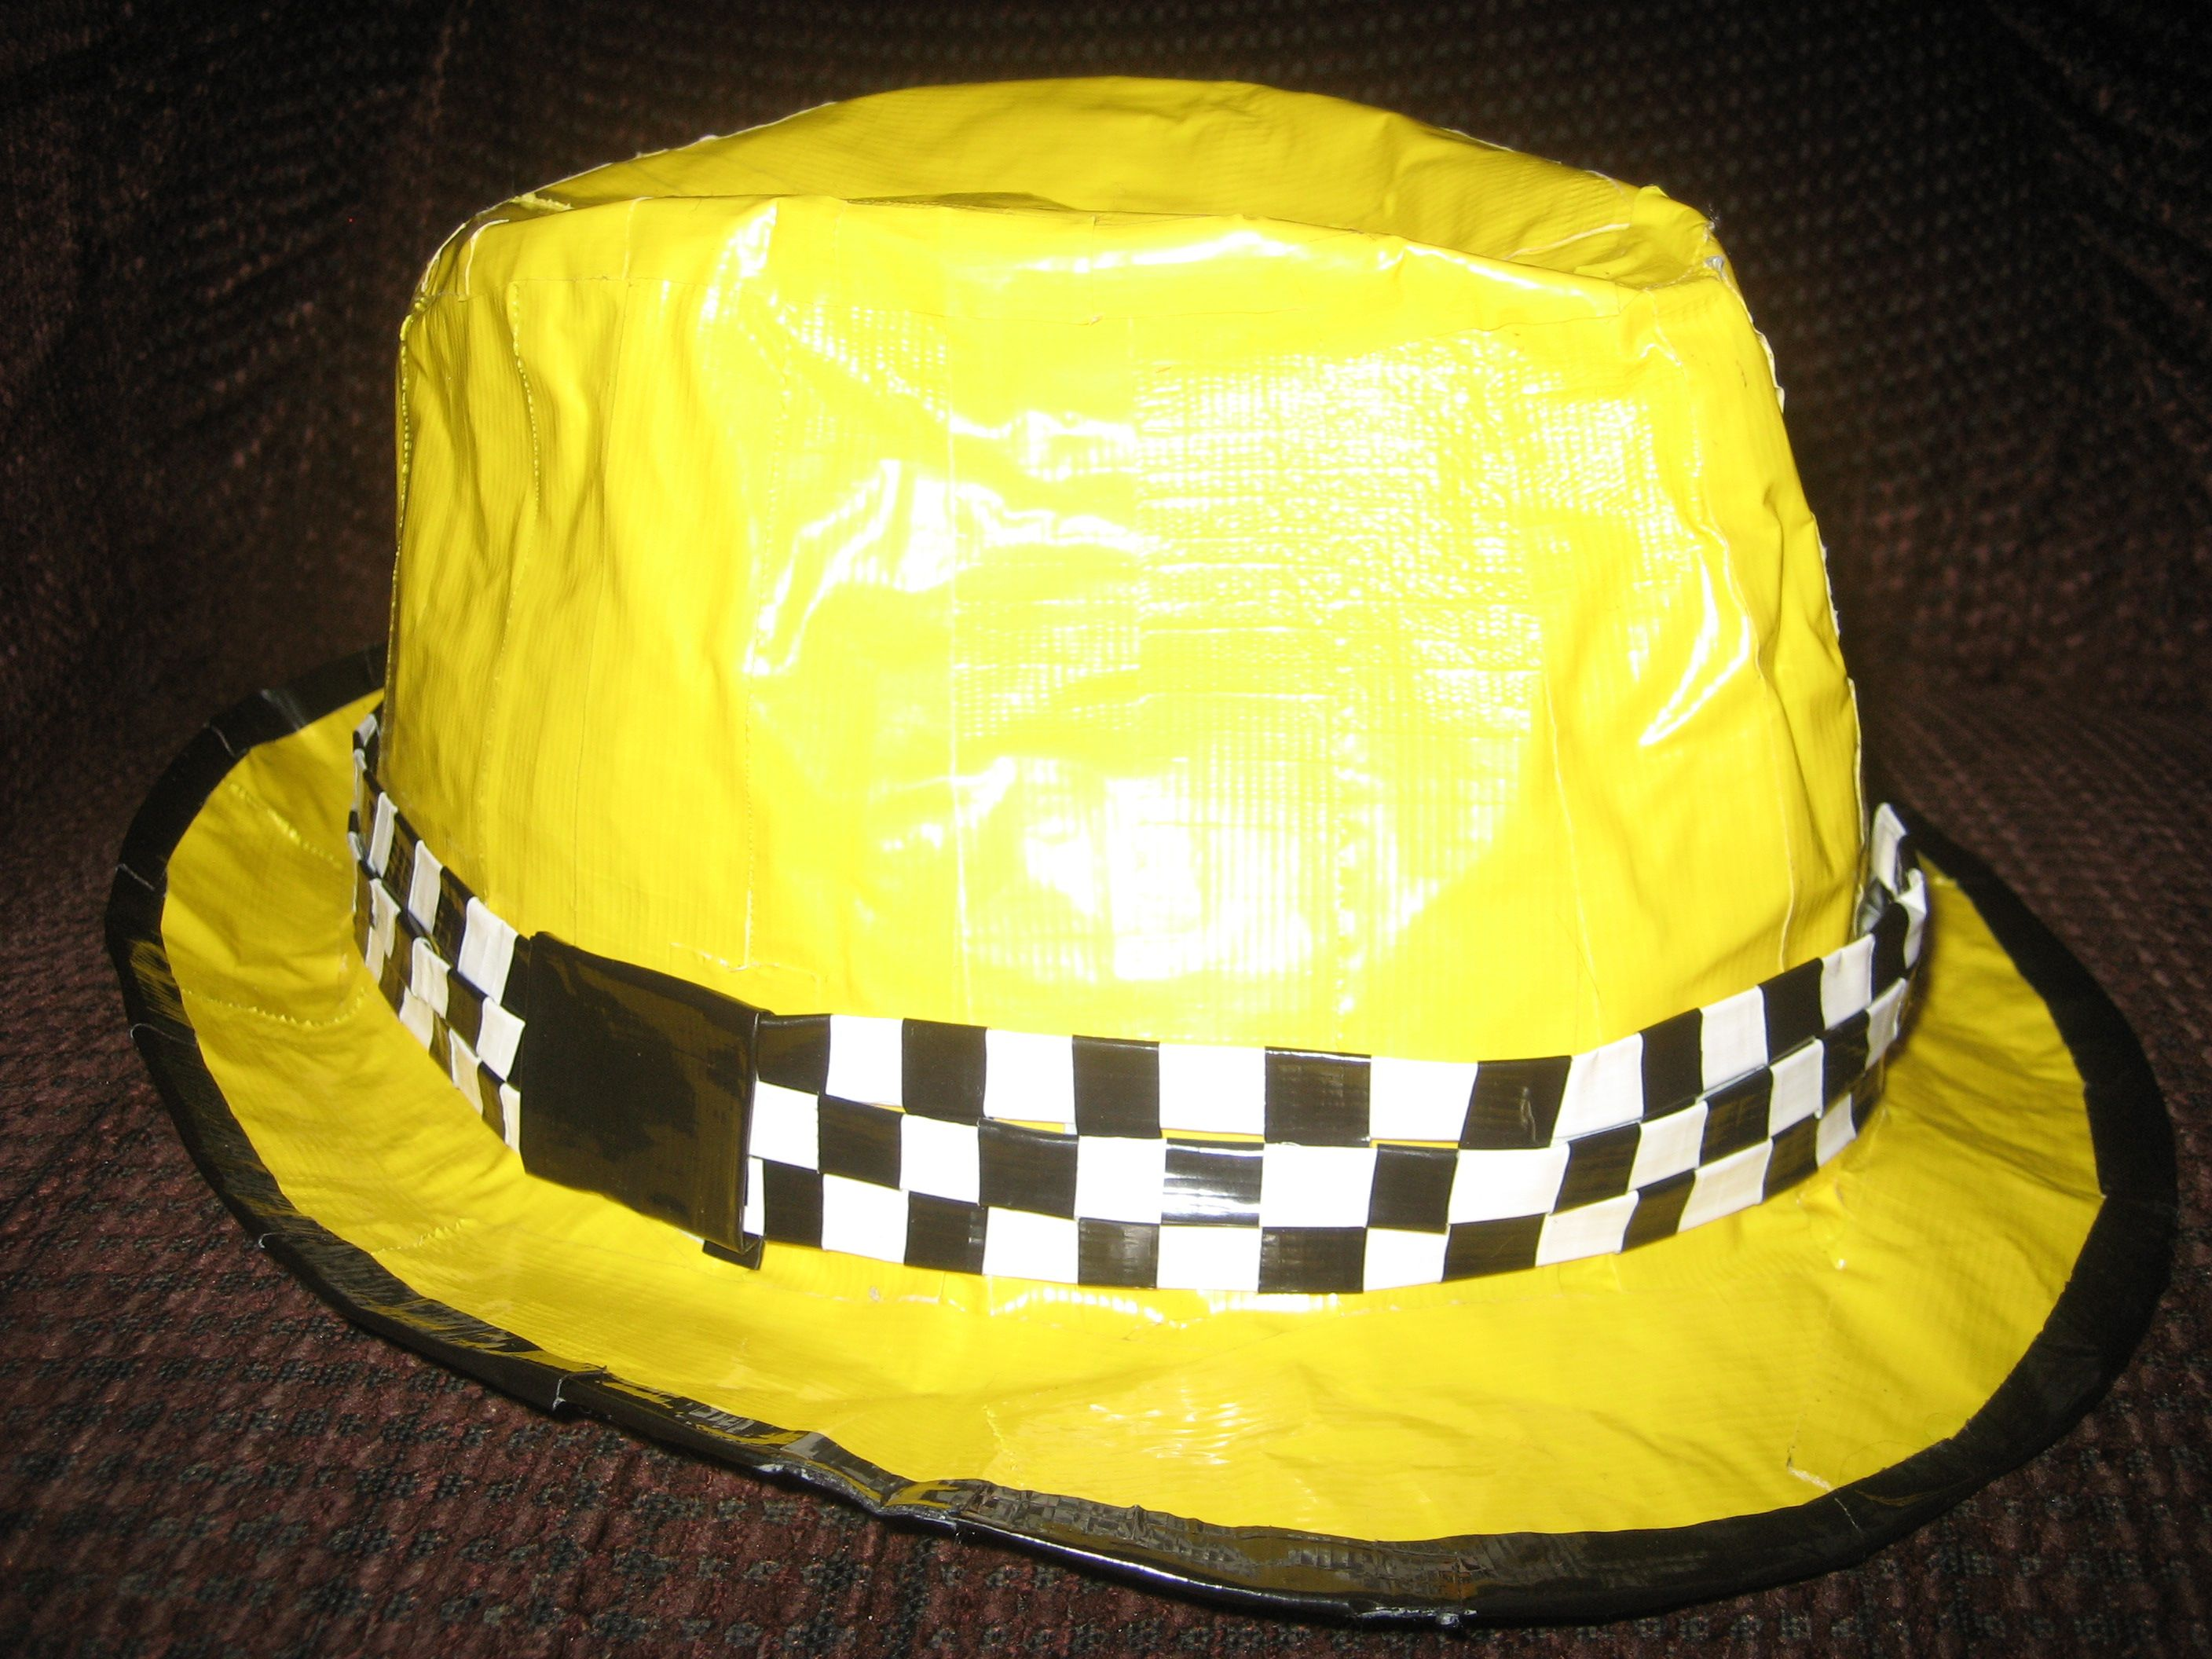 Duct Tape hat | Duct tape crafts, Duct tape, Duck tape crafts